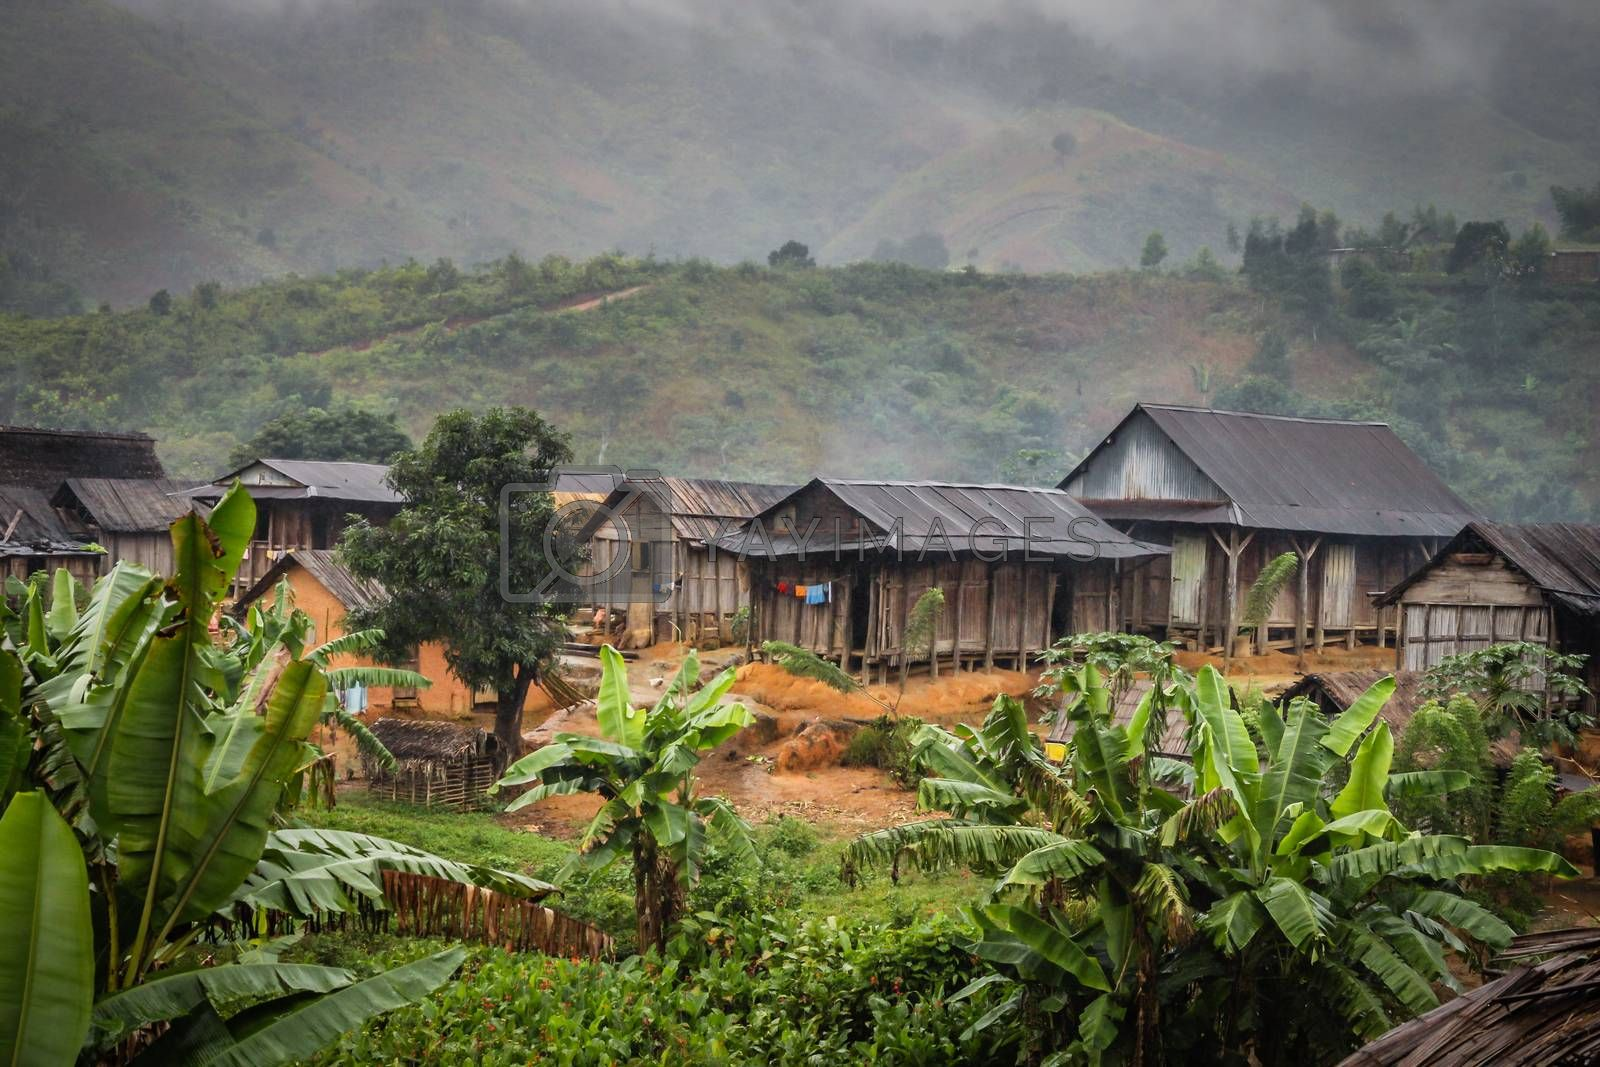 Small village in the middle of Madagascar rainforest